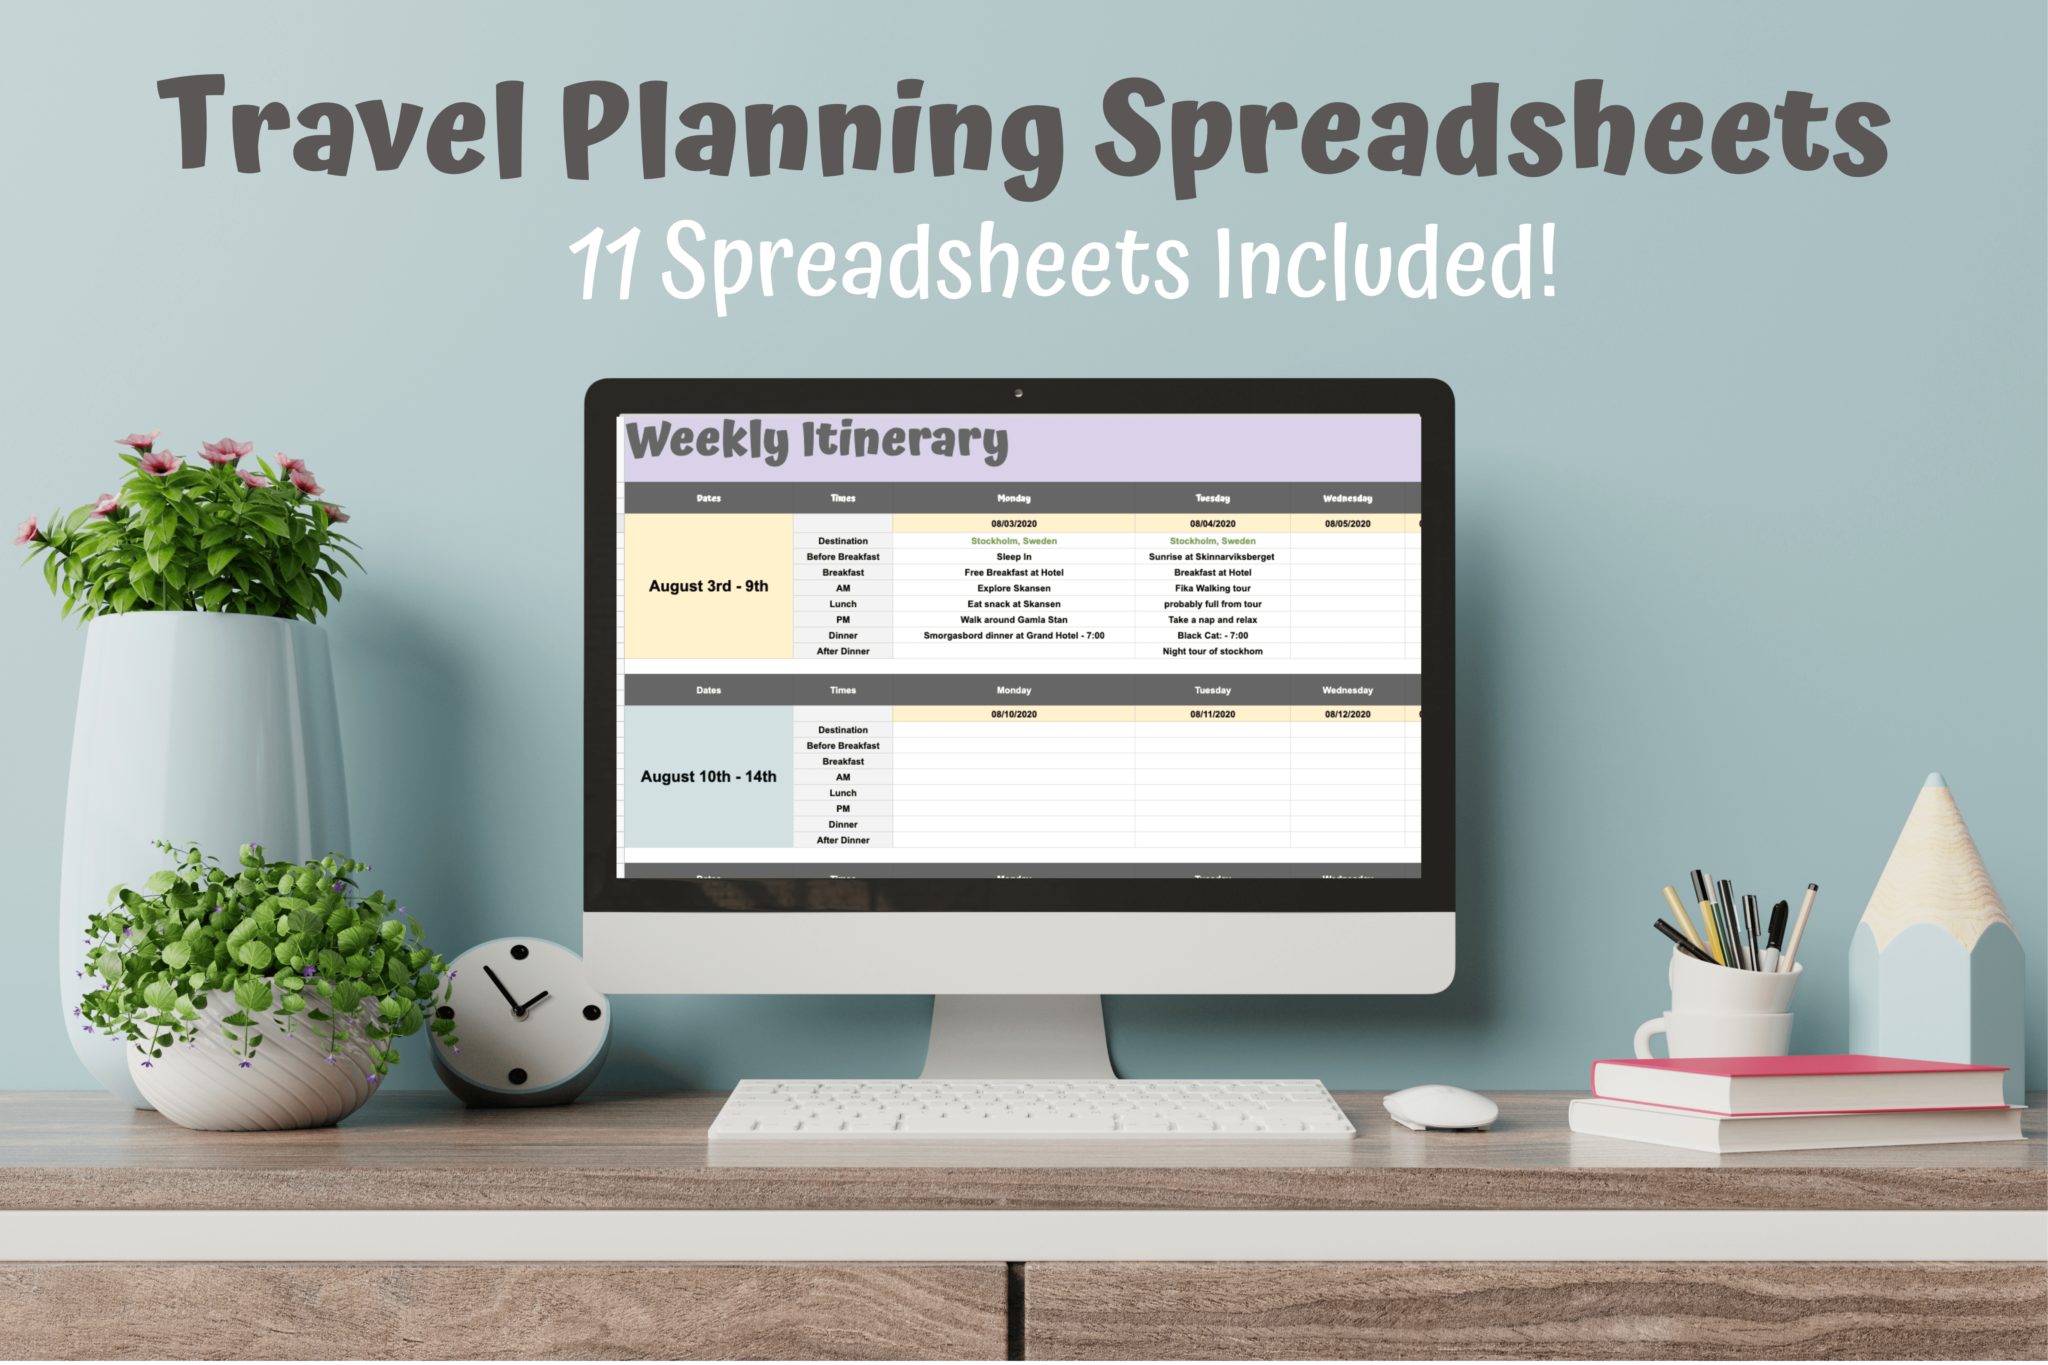 Travel Planning Spreadsheets